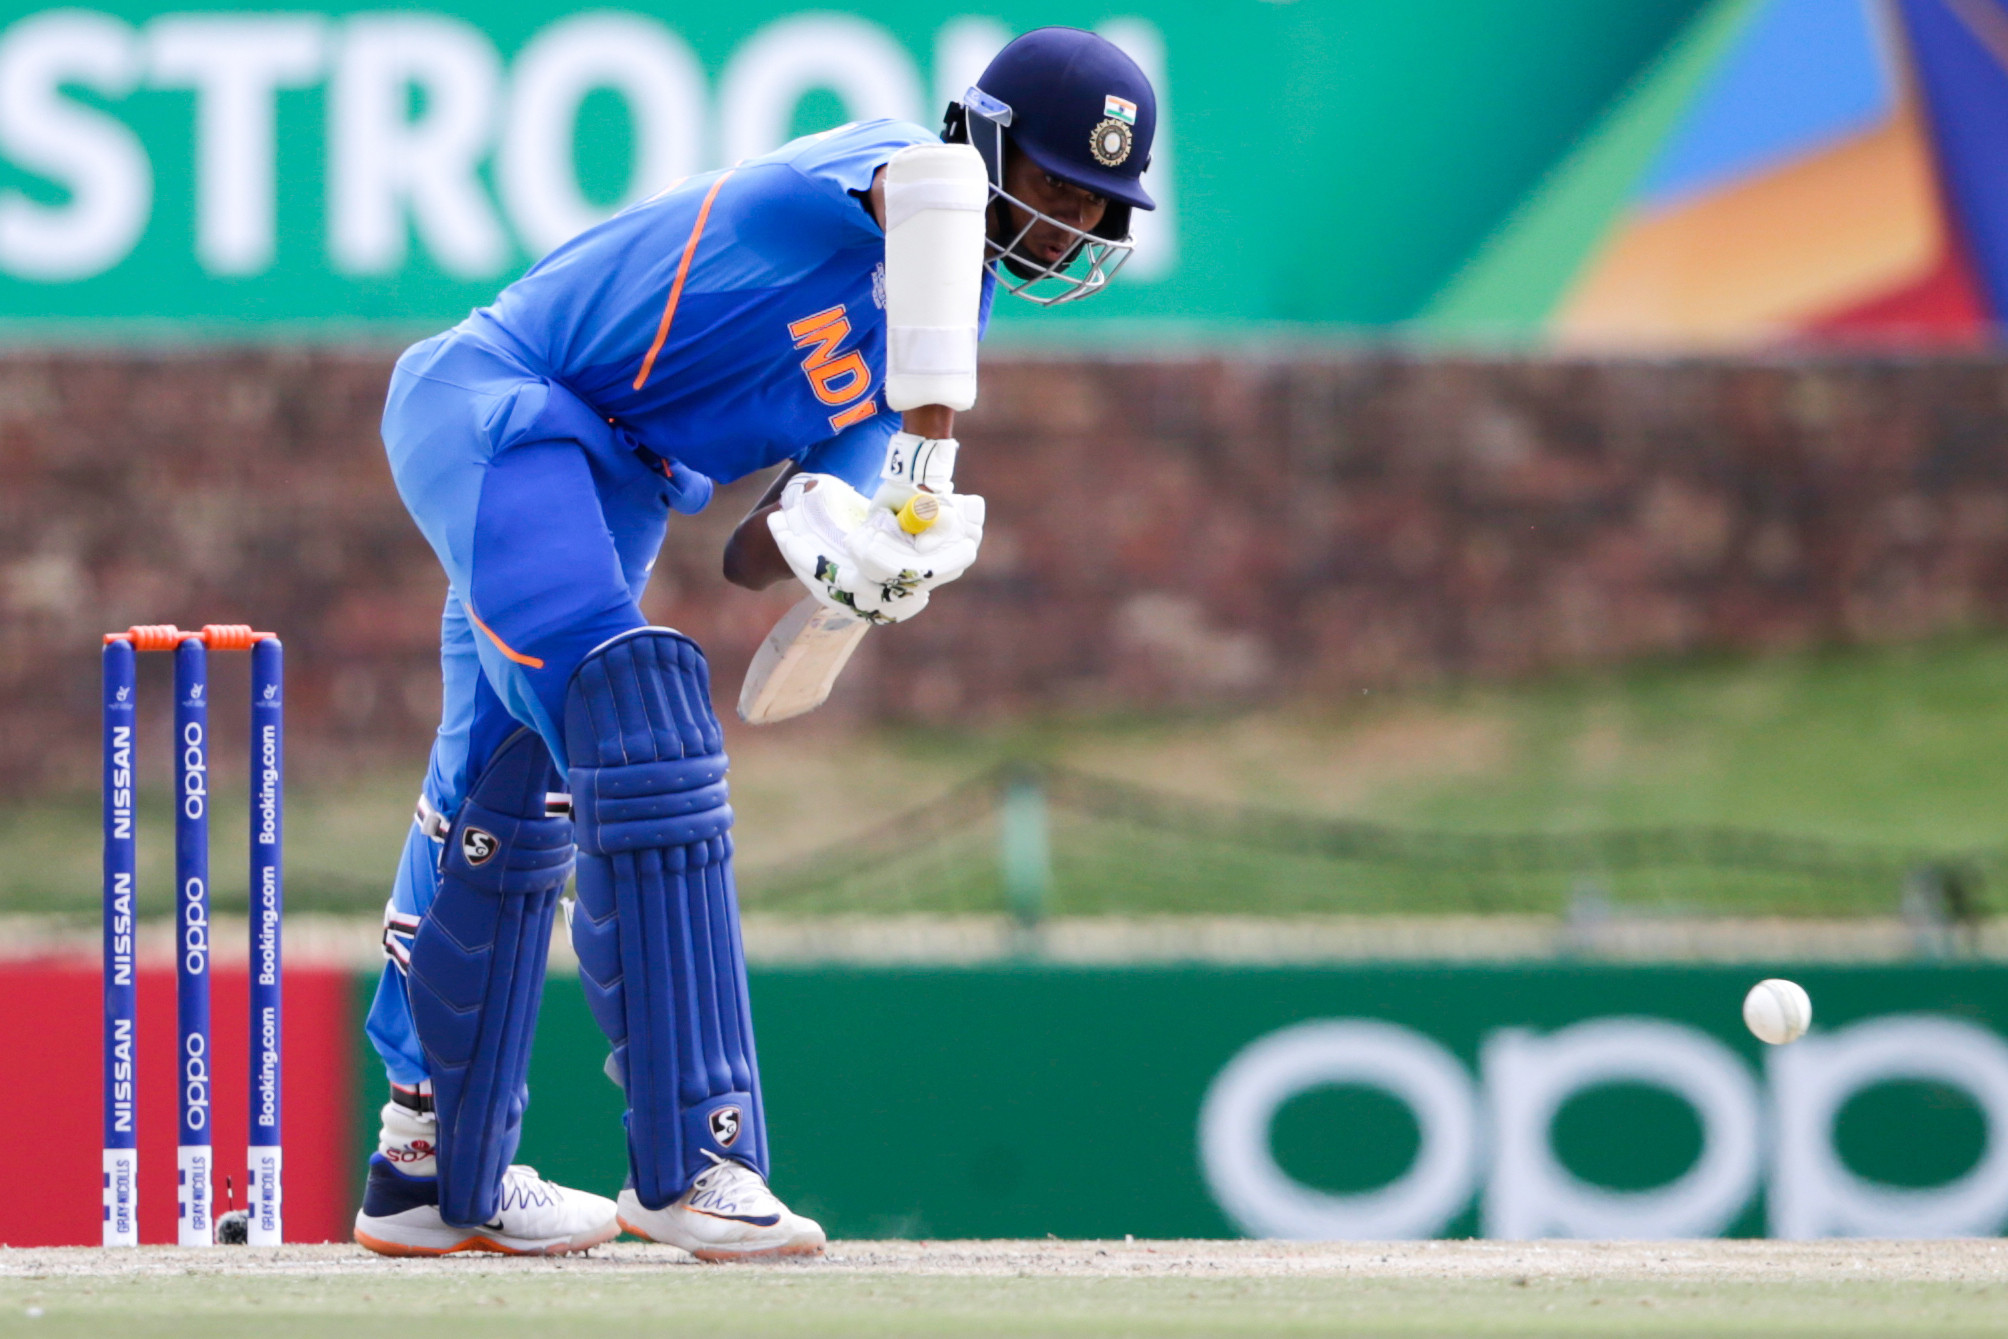 India thrash Pakistan to reach third ICC Under-19 World Cup final in a row